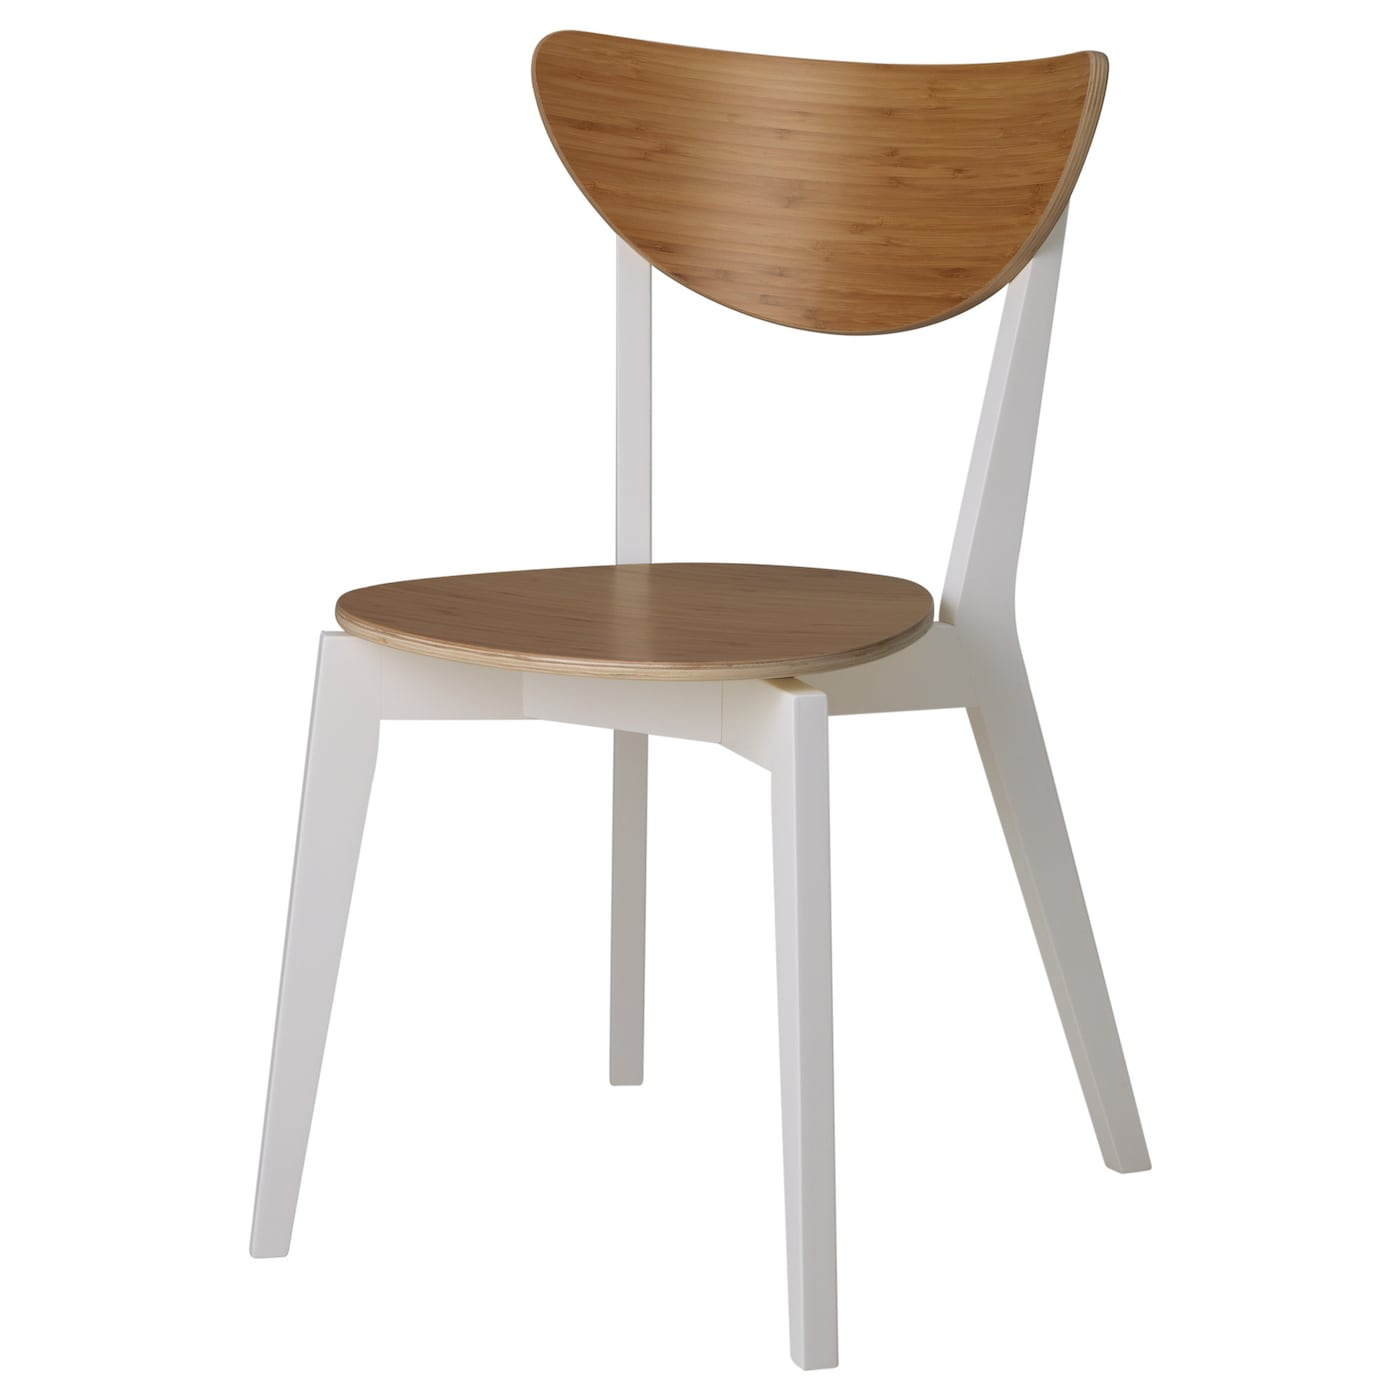 Ikea Kitchen Chairs: NORDMYRA Chair Bamboo/white